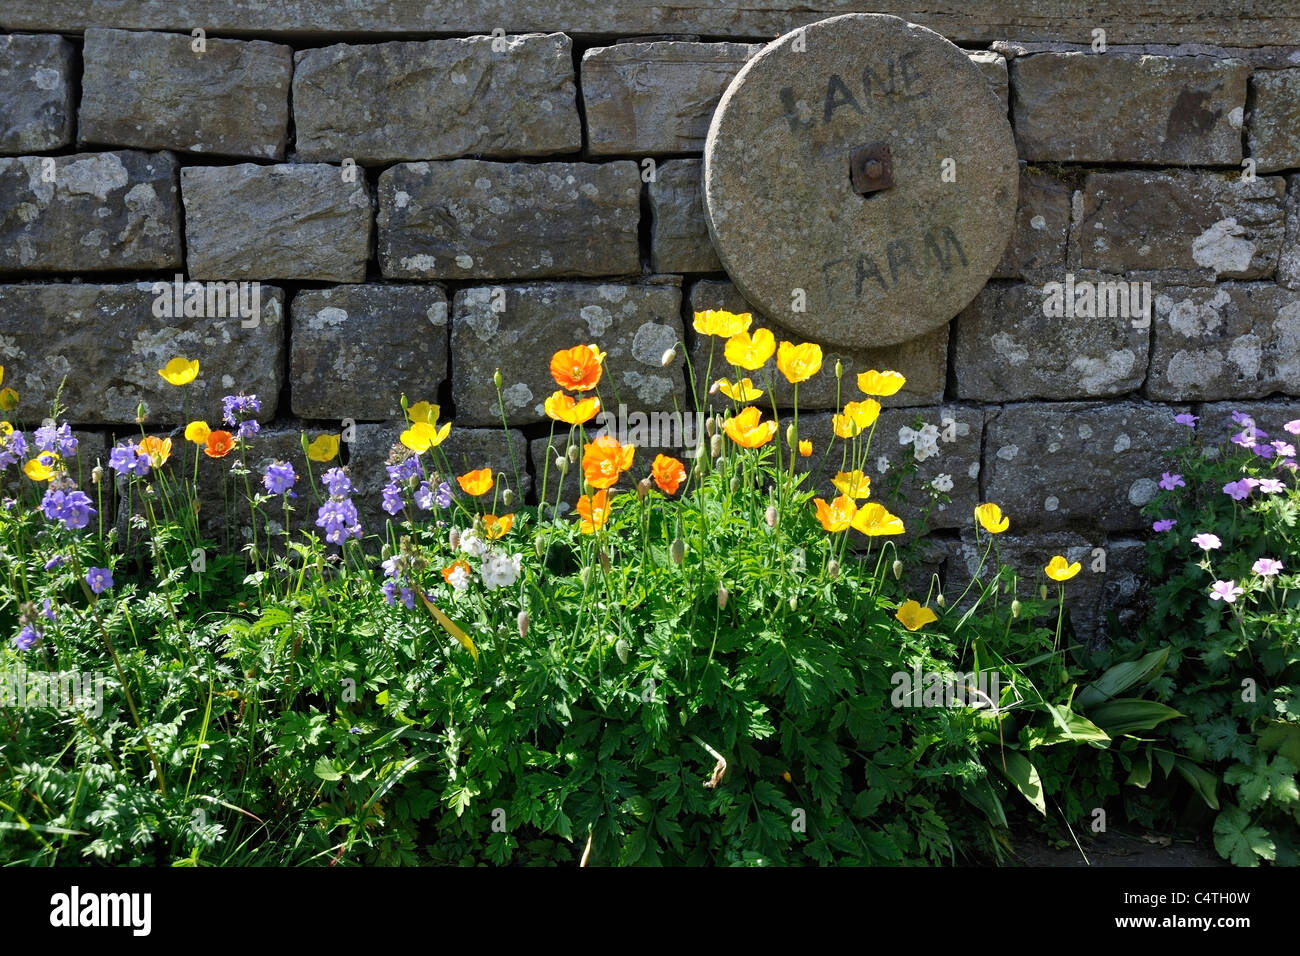 Summer flowers against a drystone wall in Muker, Swaledale, Yorkshire, England - Stock Image